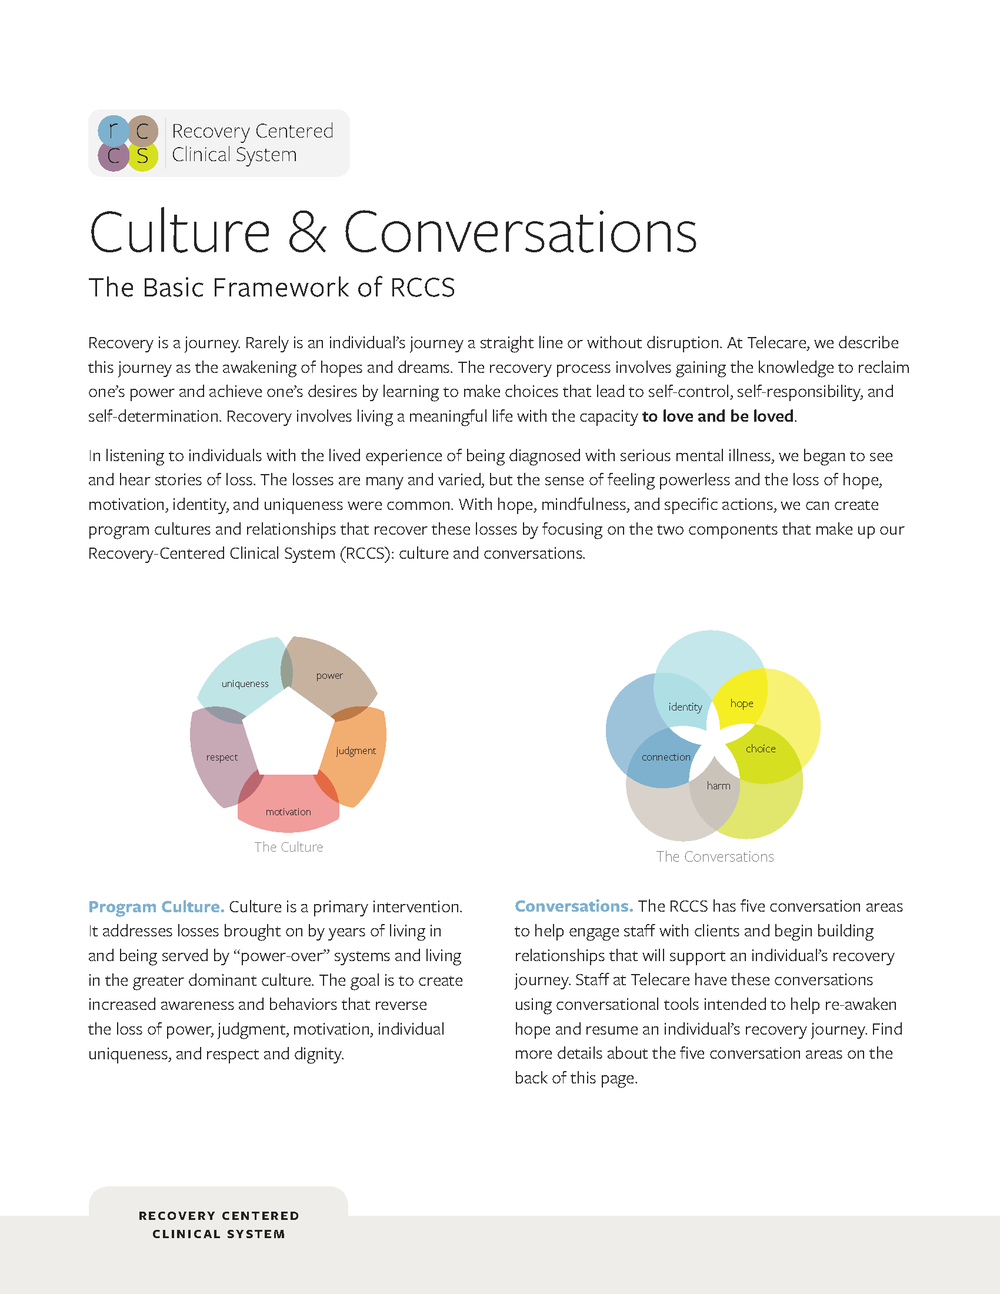 2017_03_RCCS_Culture and Conversations Framework_Page_1.png